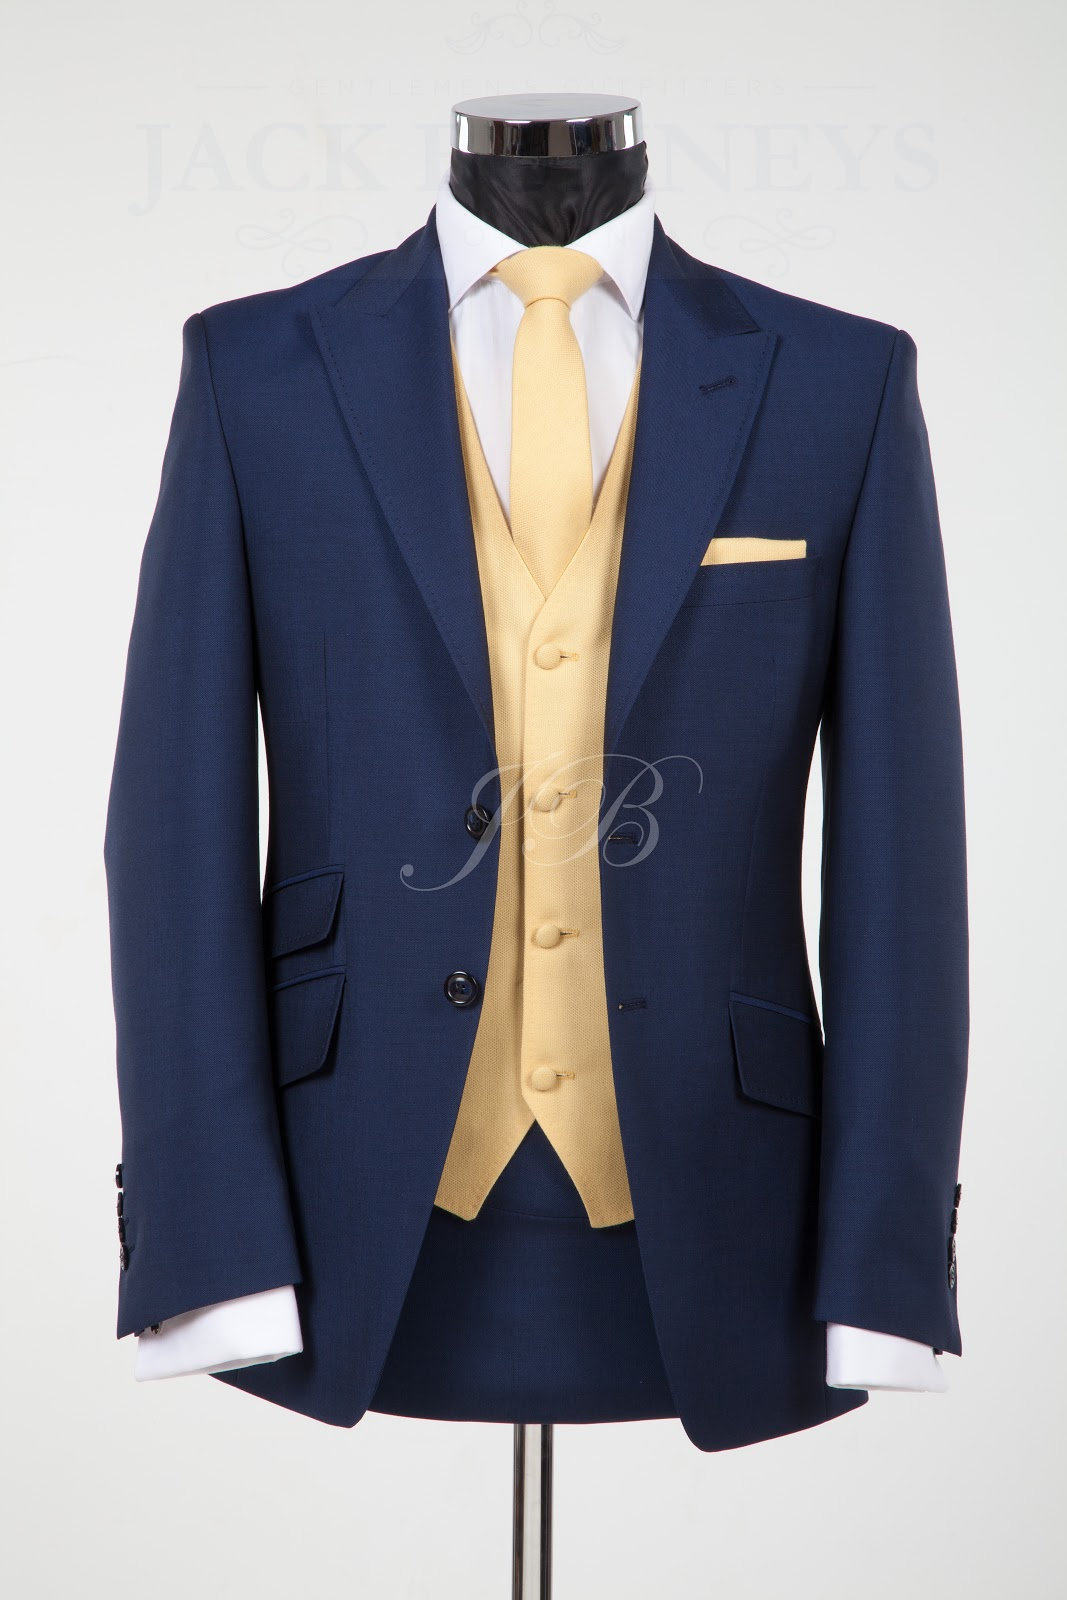 The Bunney Blog Vintage Wedding Suit Hire New For 2013